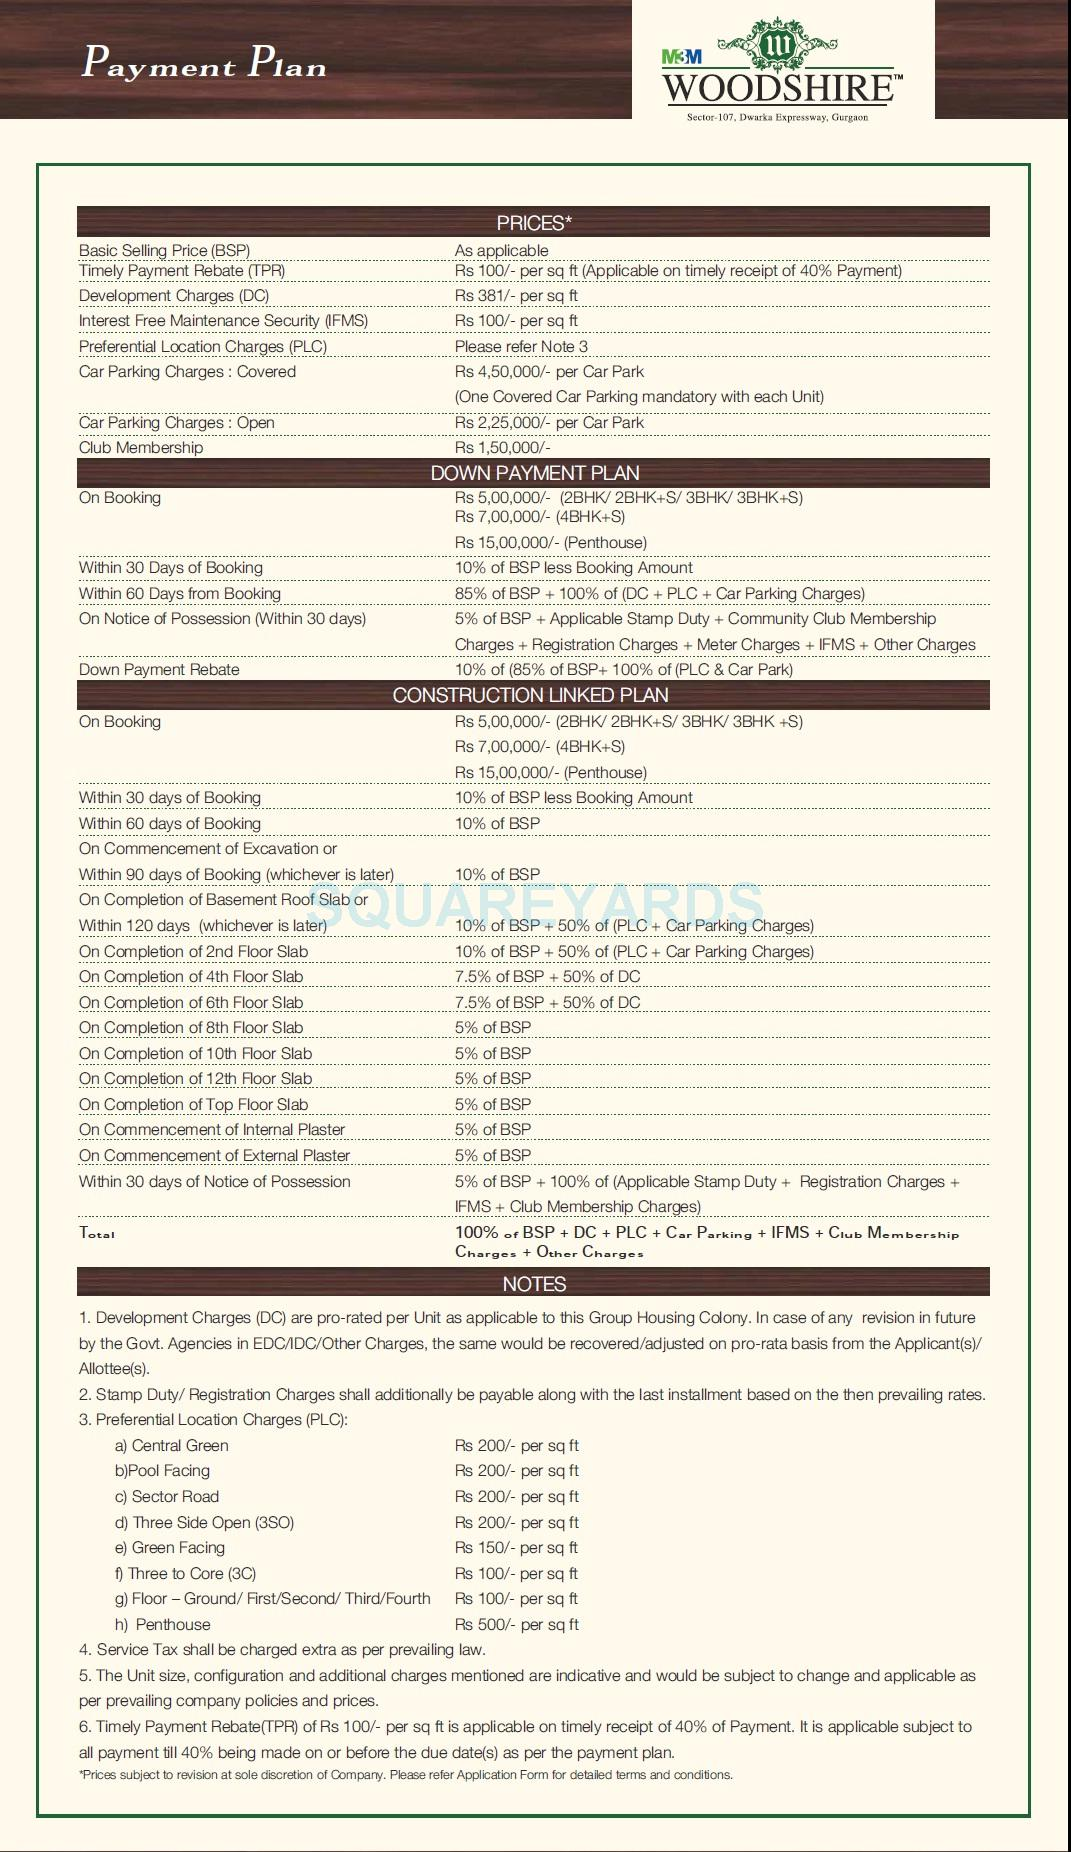 m3m woodshire payment plan image1